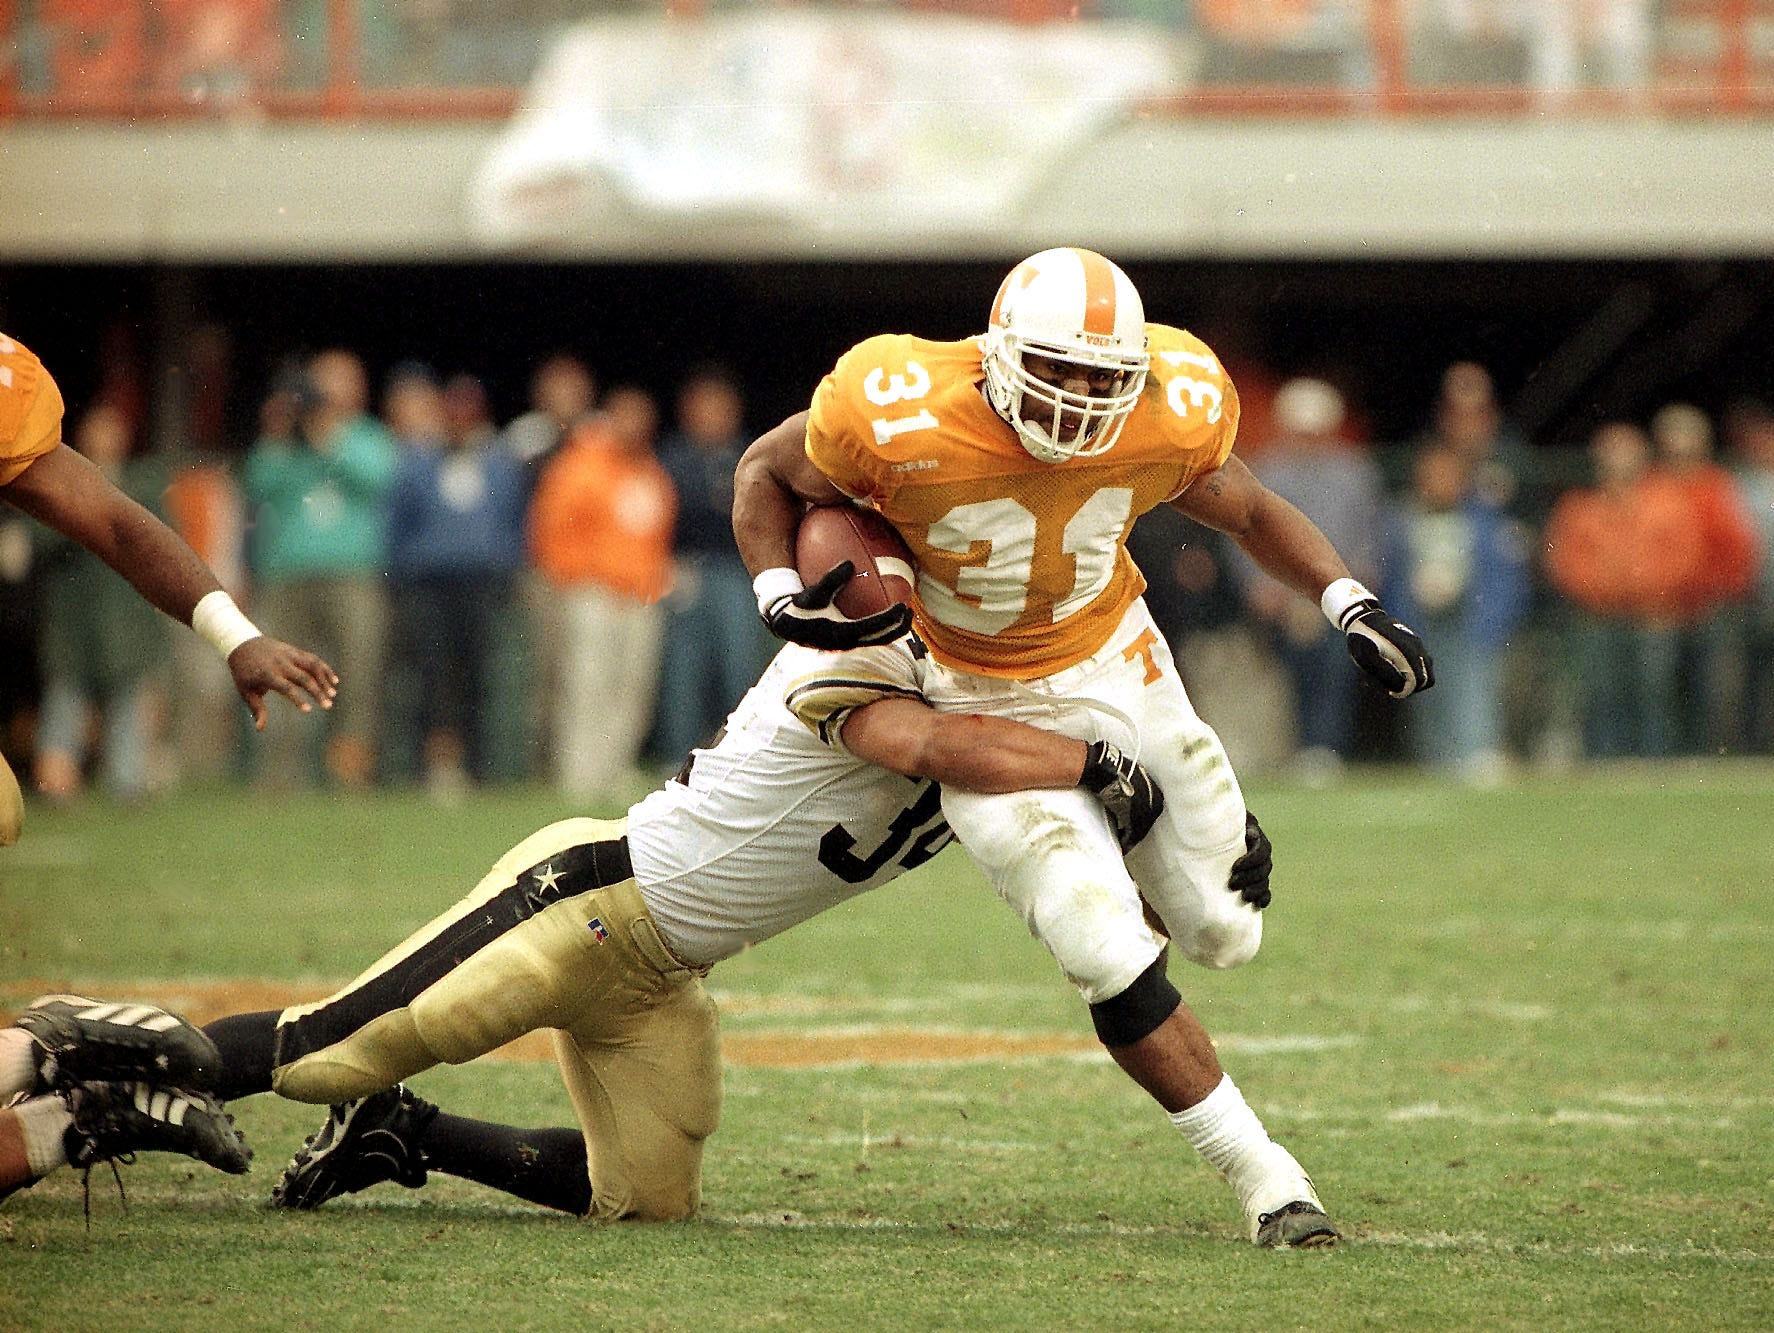 Tennessee's Jamal Lewis is grabbed by Vanderbilt's Carlton Hall in January 31, 1997.